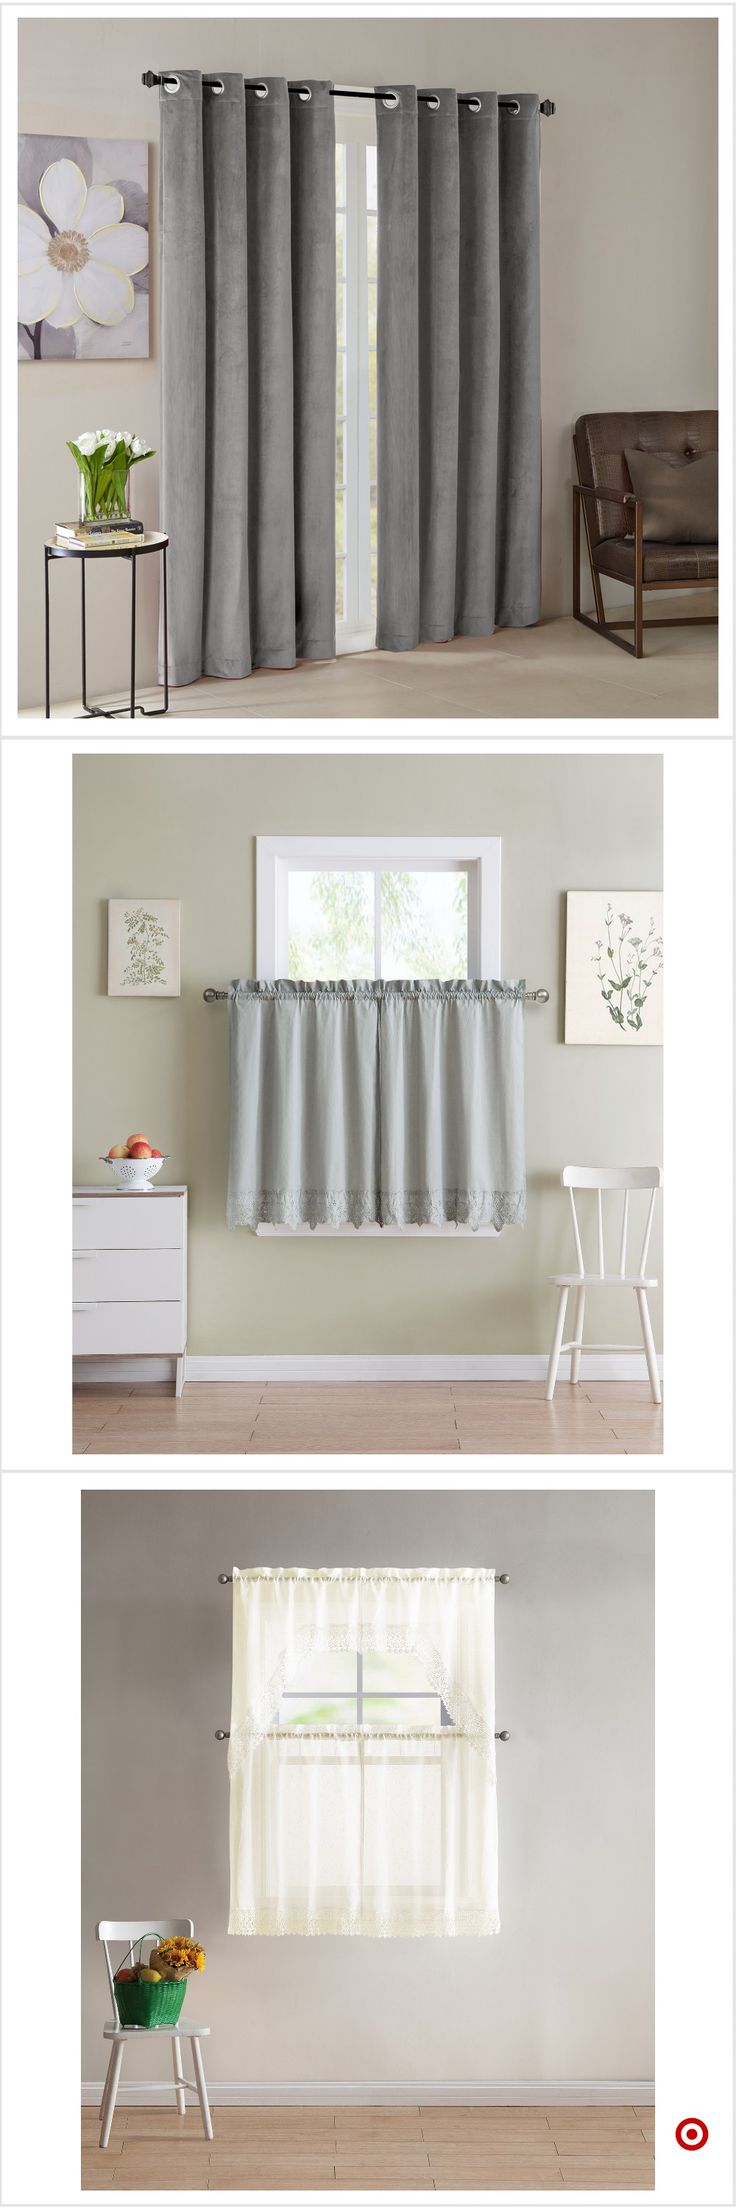 Shop Target for curtain panels you will love at great low prices. Free shipping on orders of $35+ or free same-day pick-up in store.